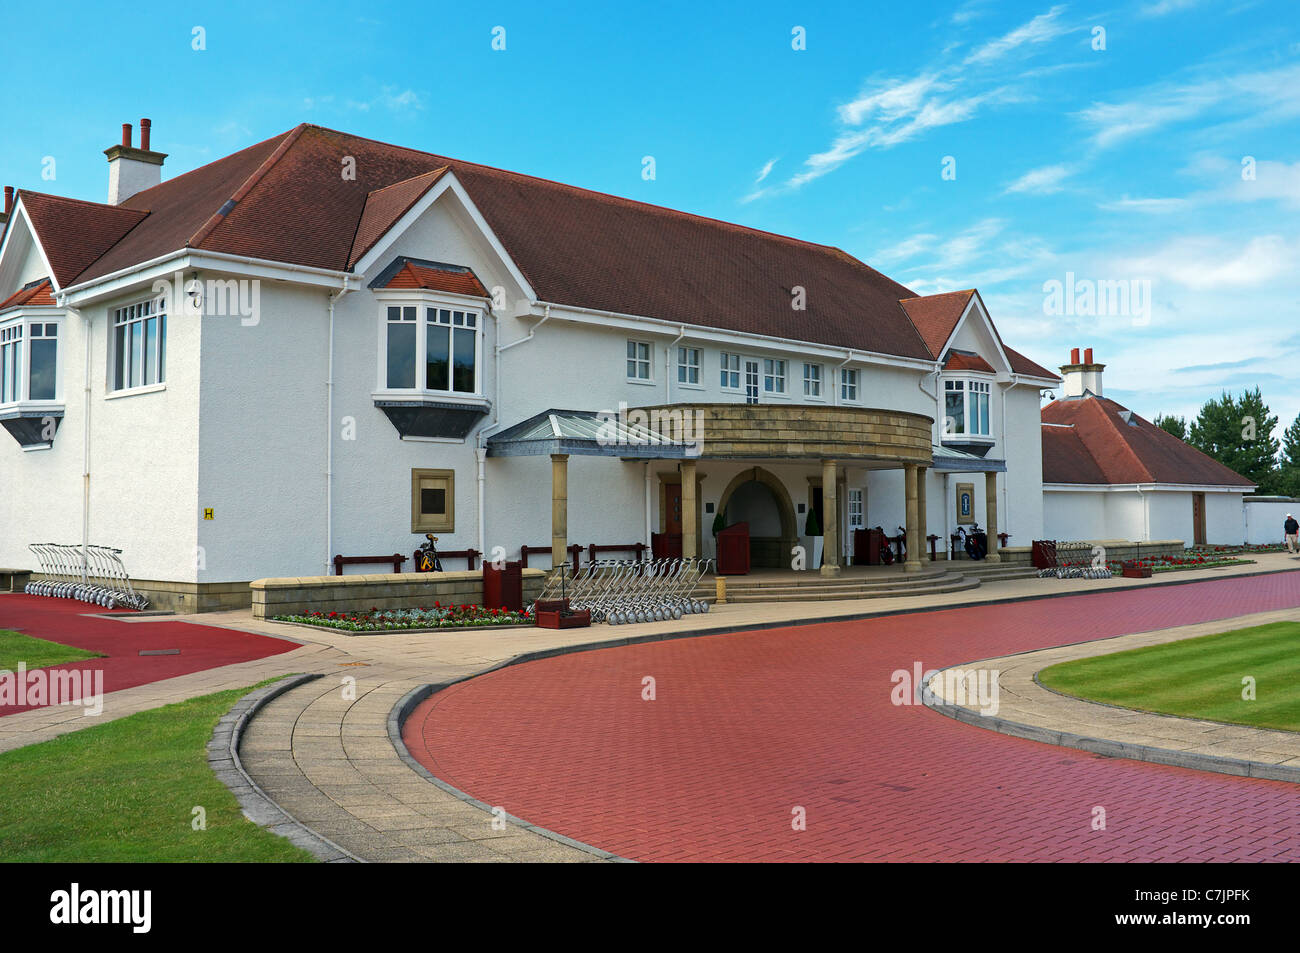 Clubhouse of Trump Turnberry Golf Club, Trump Turnberry, Ayrshire, Scotland, UK, Great Britain - Stock Image